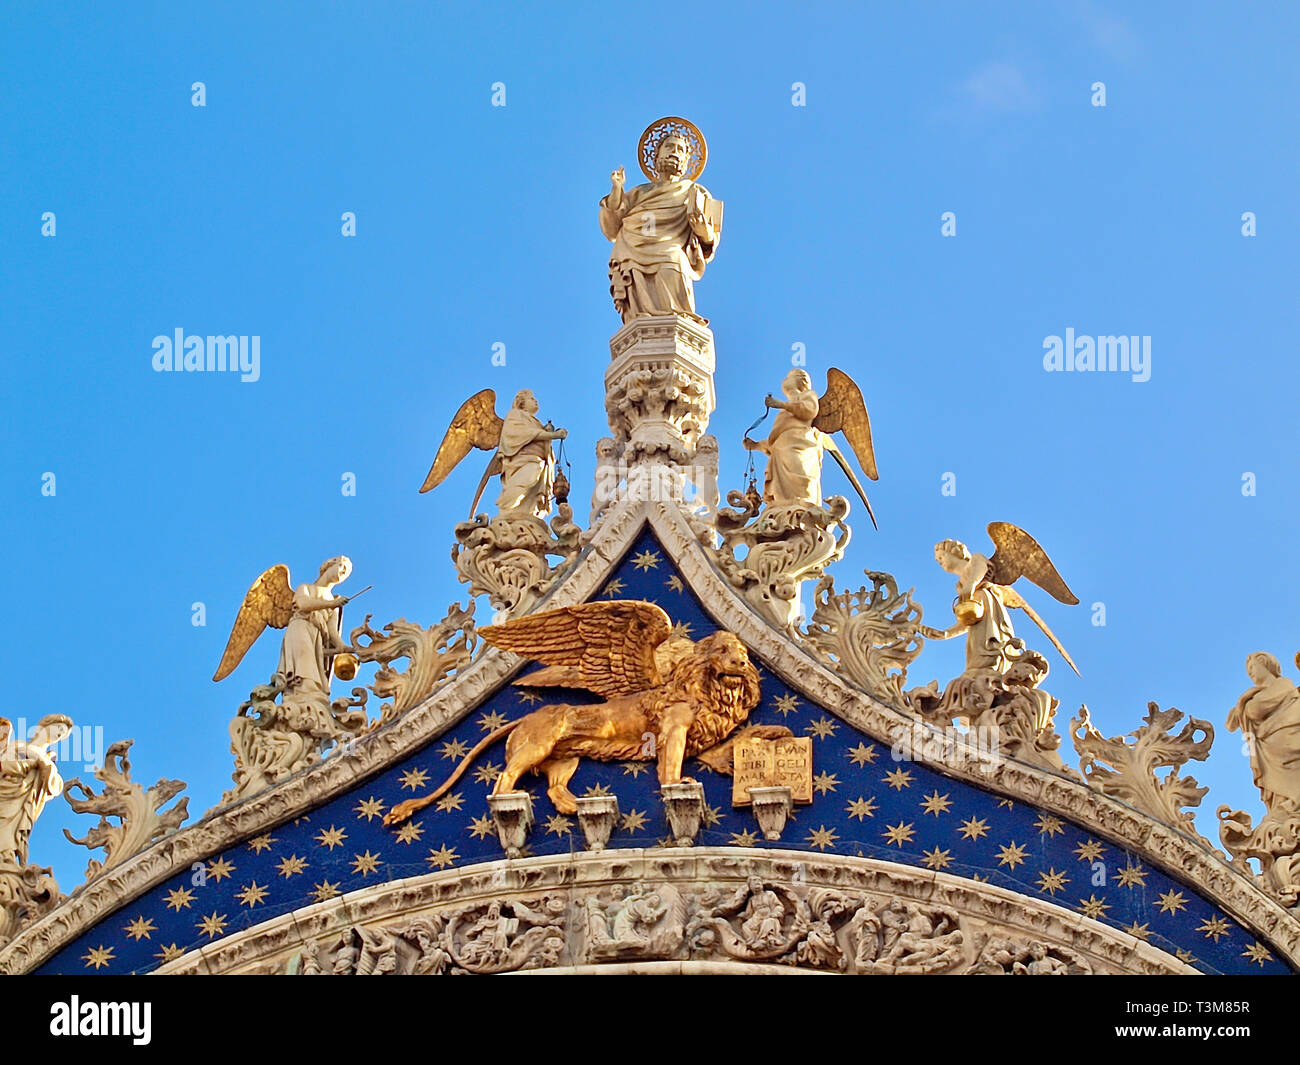 Sculptures on the top of st mark basilica in Venice - Stock Image